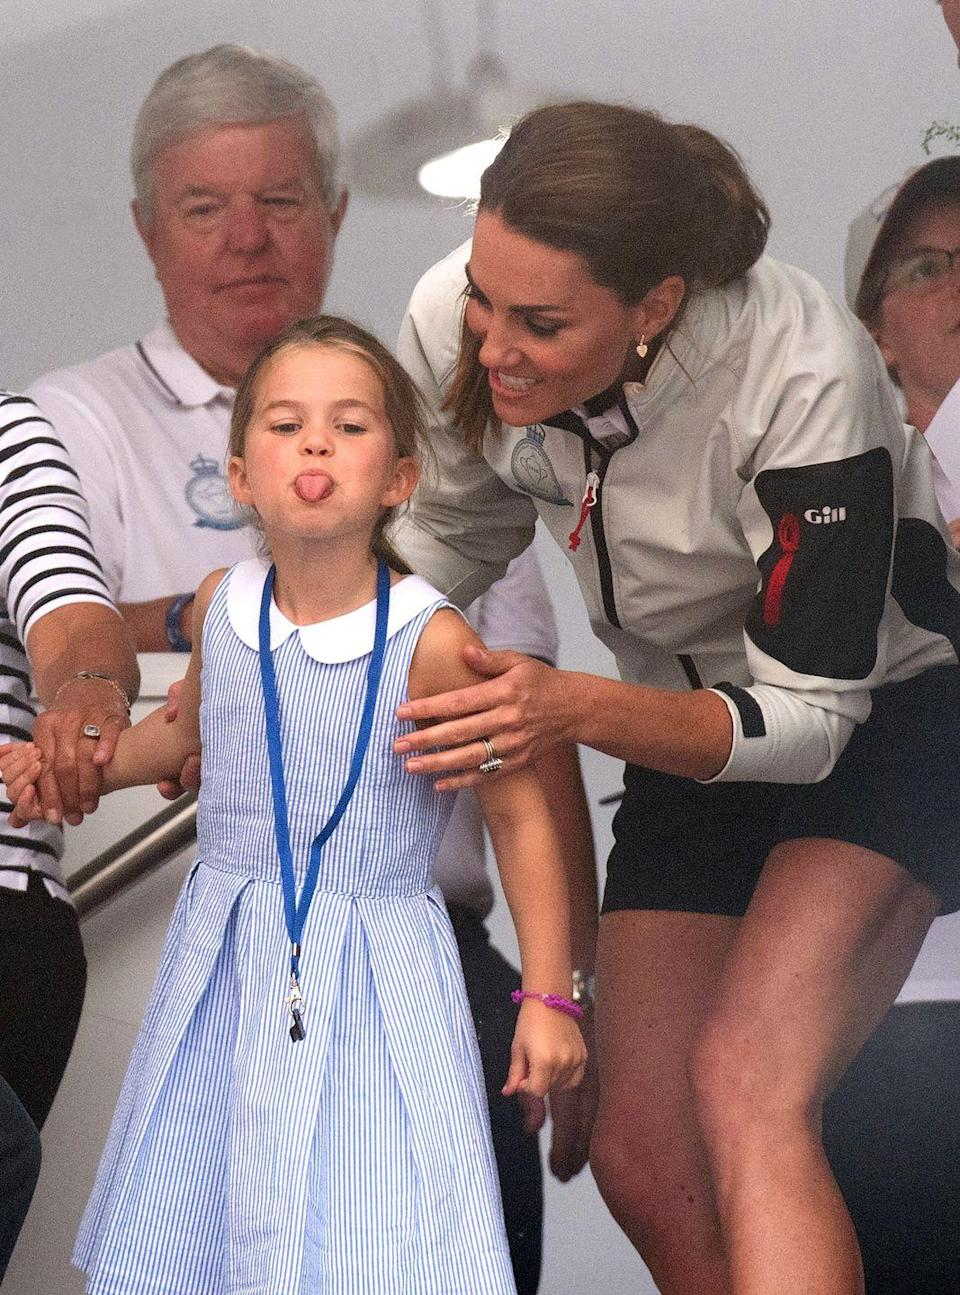 <p>Even royal children can be a bit naughty every now and then. The young royal stuck her tongue out at photographers while attending the King's Cup Regatta with her parents and grand-parents in 2019.</p>